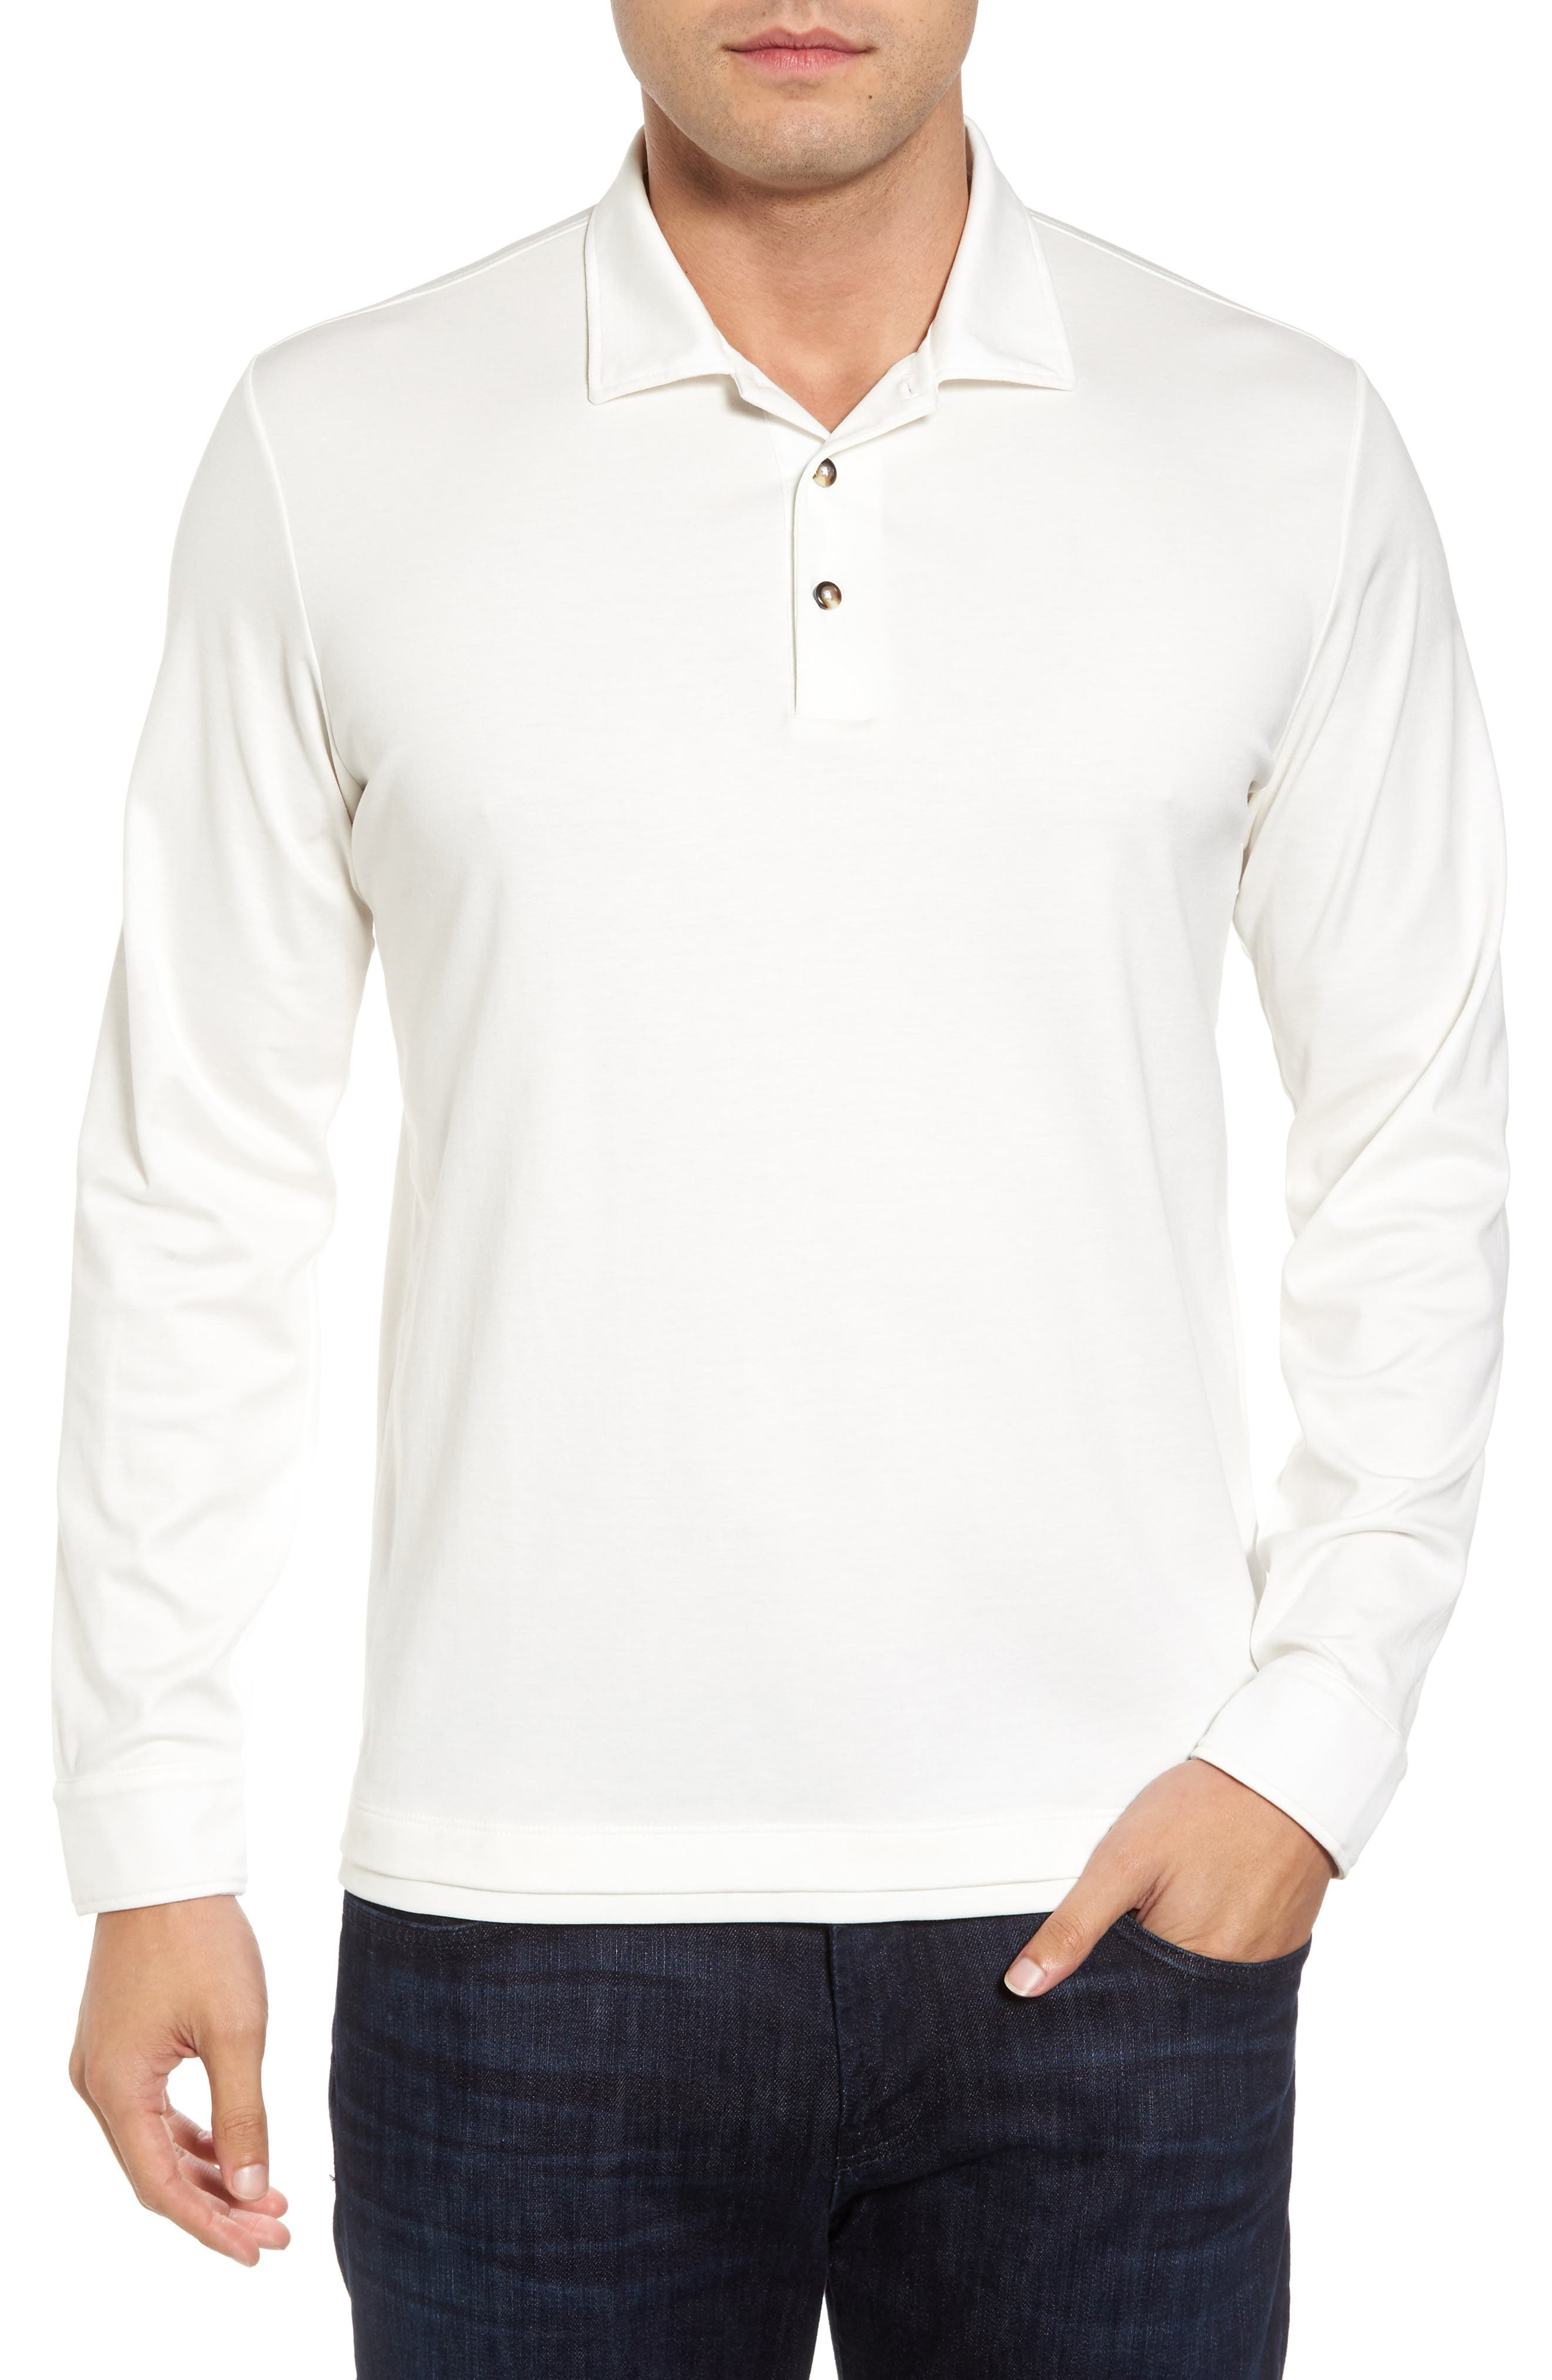 Interlock Polo,                             Main thumbnail 1, color,                             White